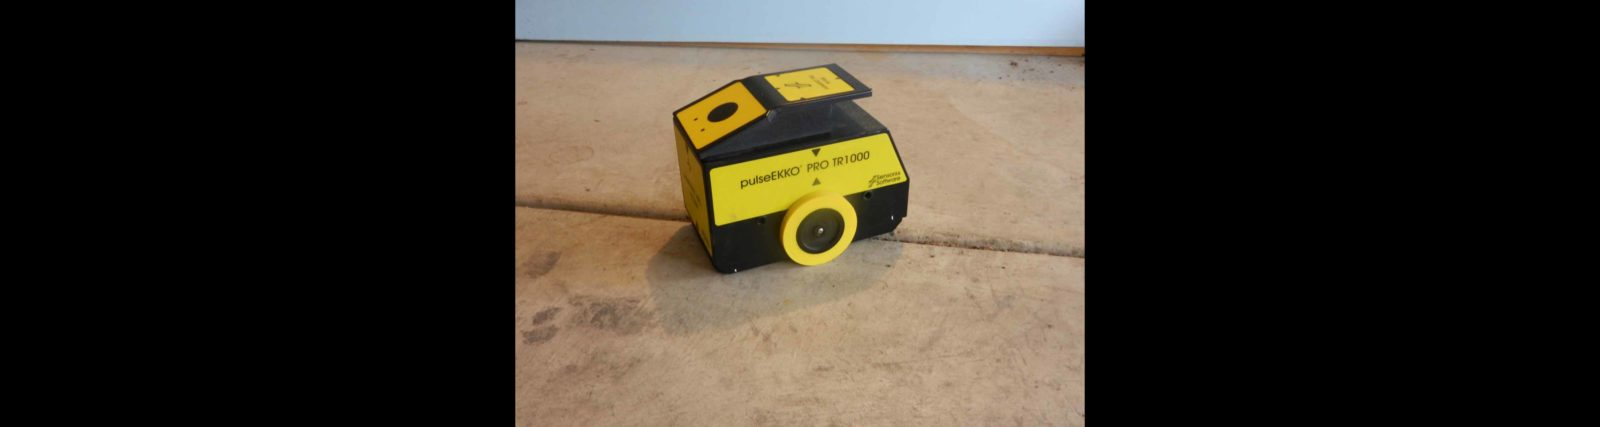 Concrete Scanning With 1000 MHz GPR